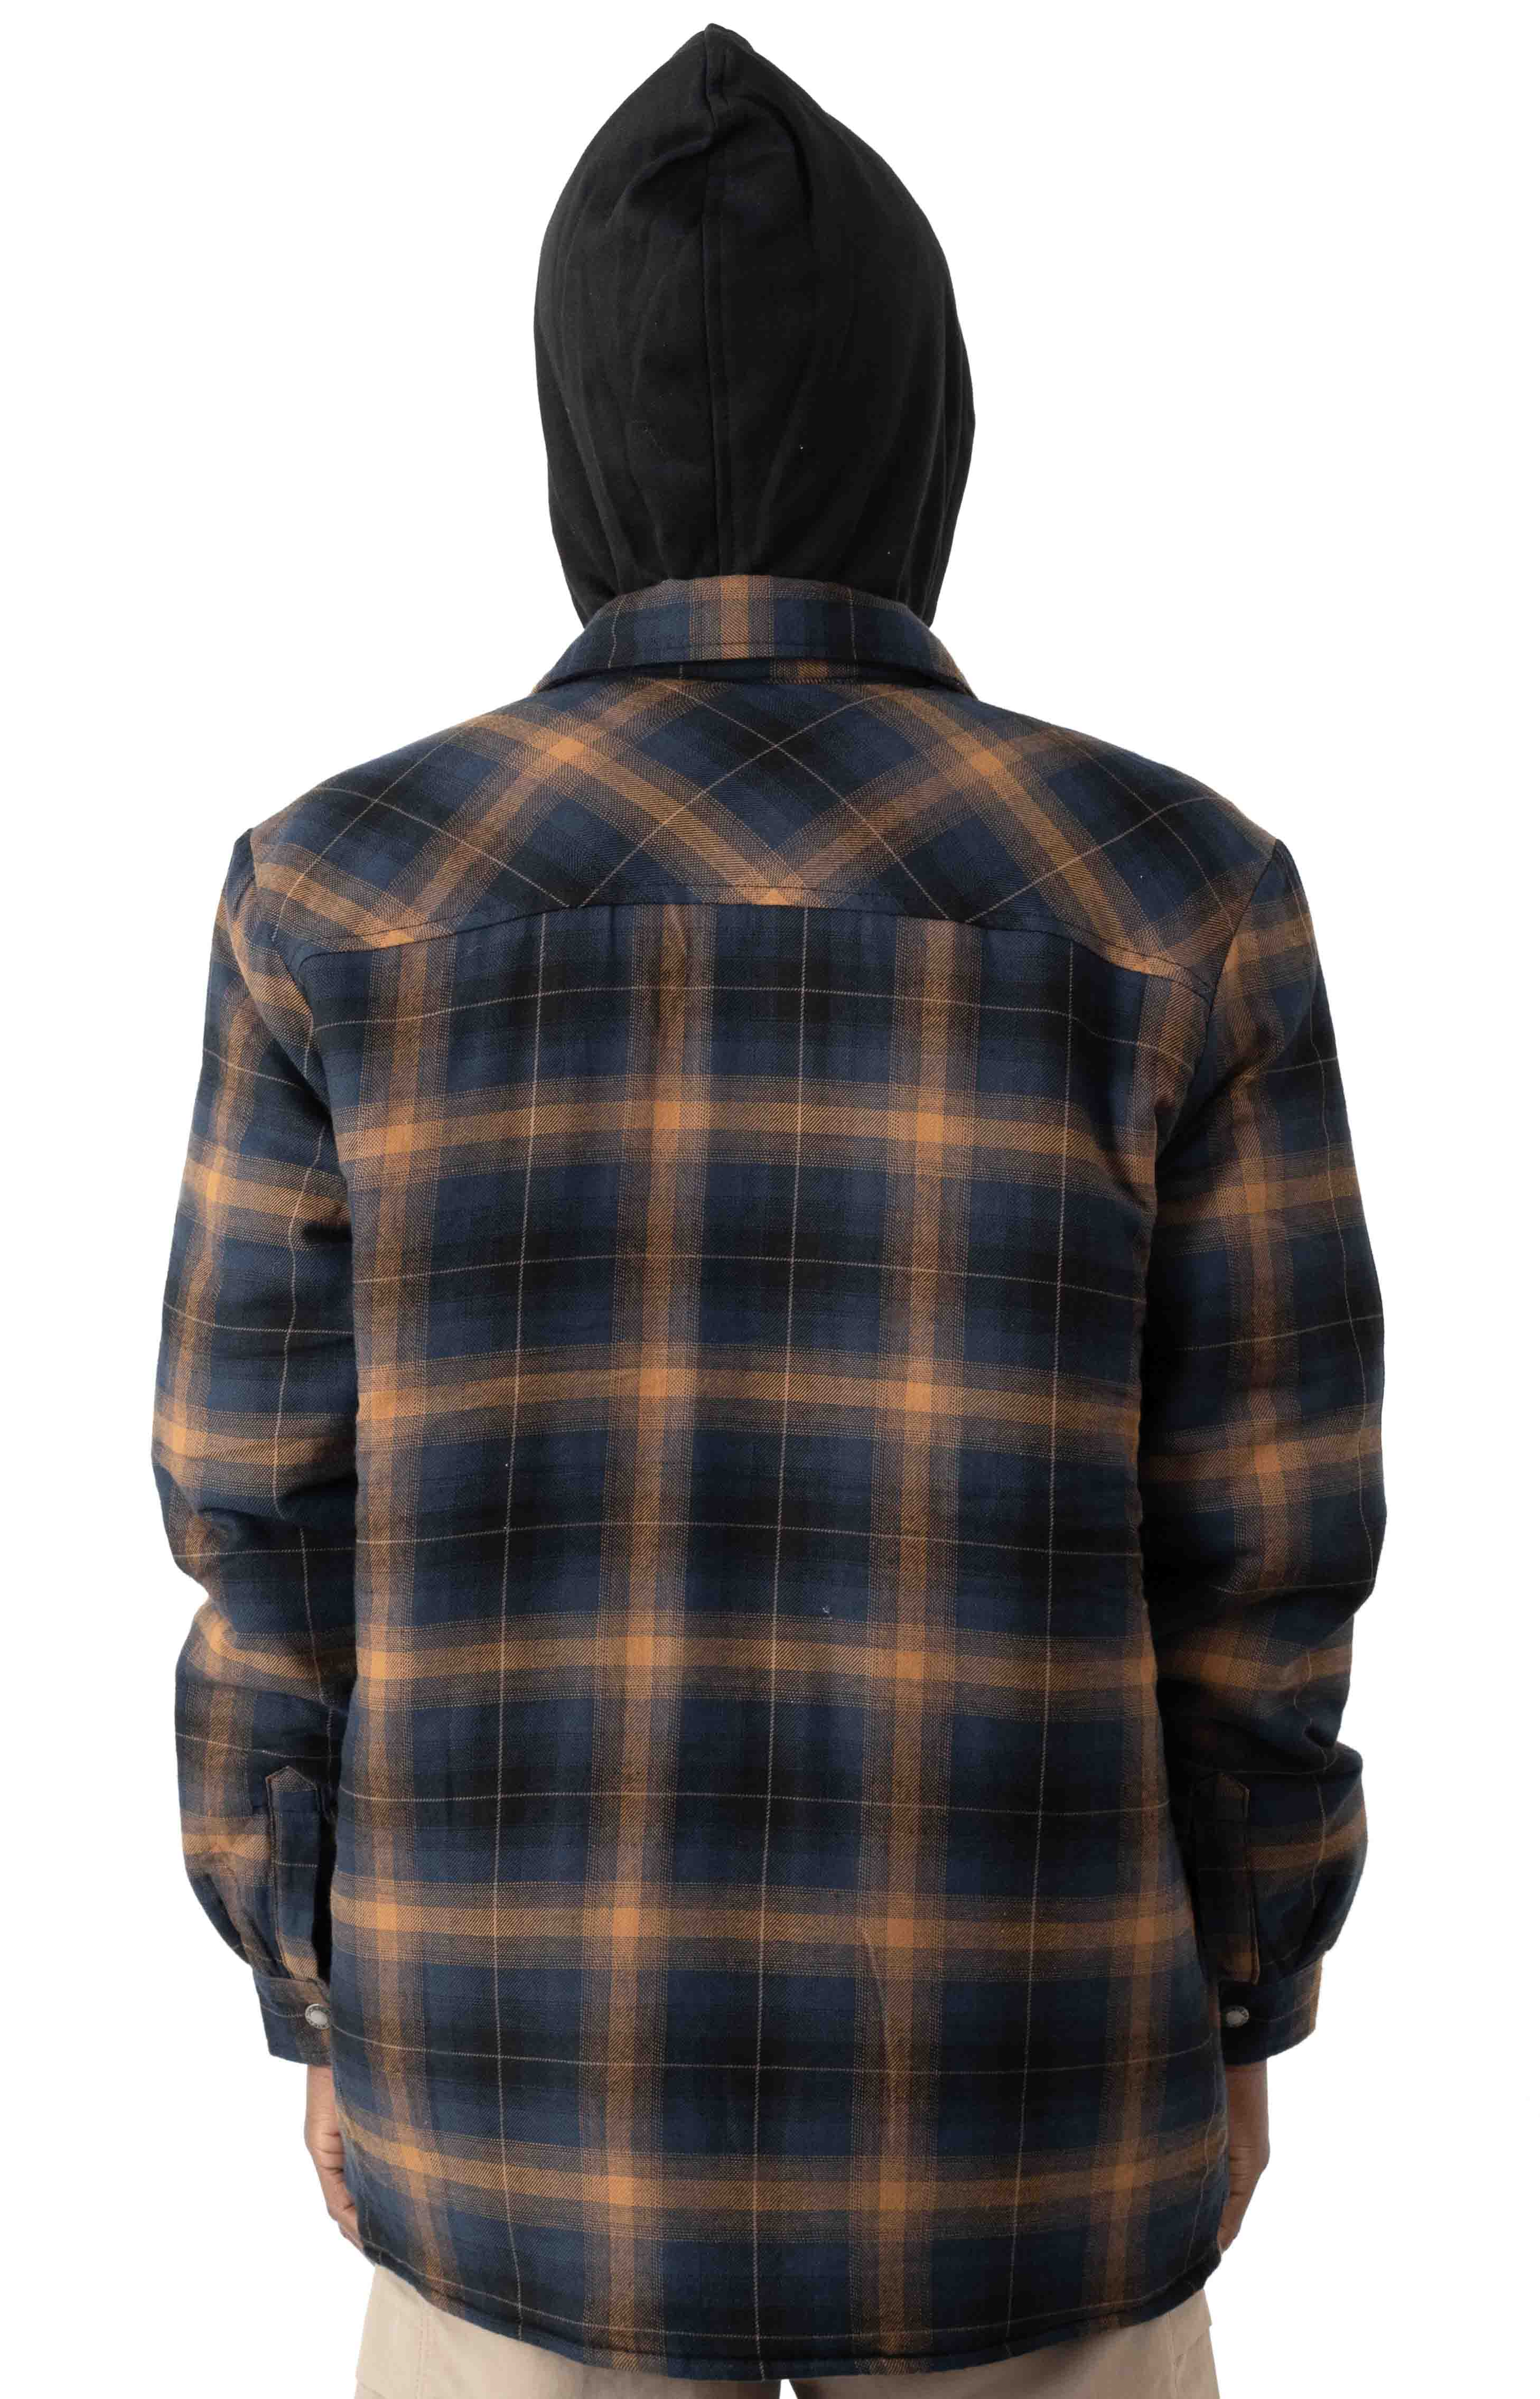 (TJ211IP1) Fleece Hooded Flannel Shirt Jacket with Hydroshield - Ink Navy Brown Ombre Plaid 3